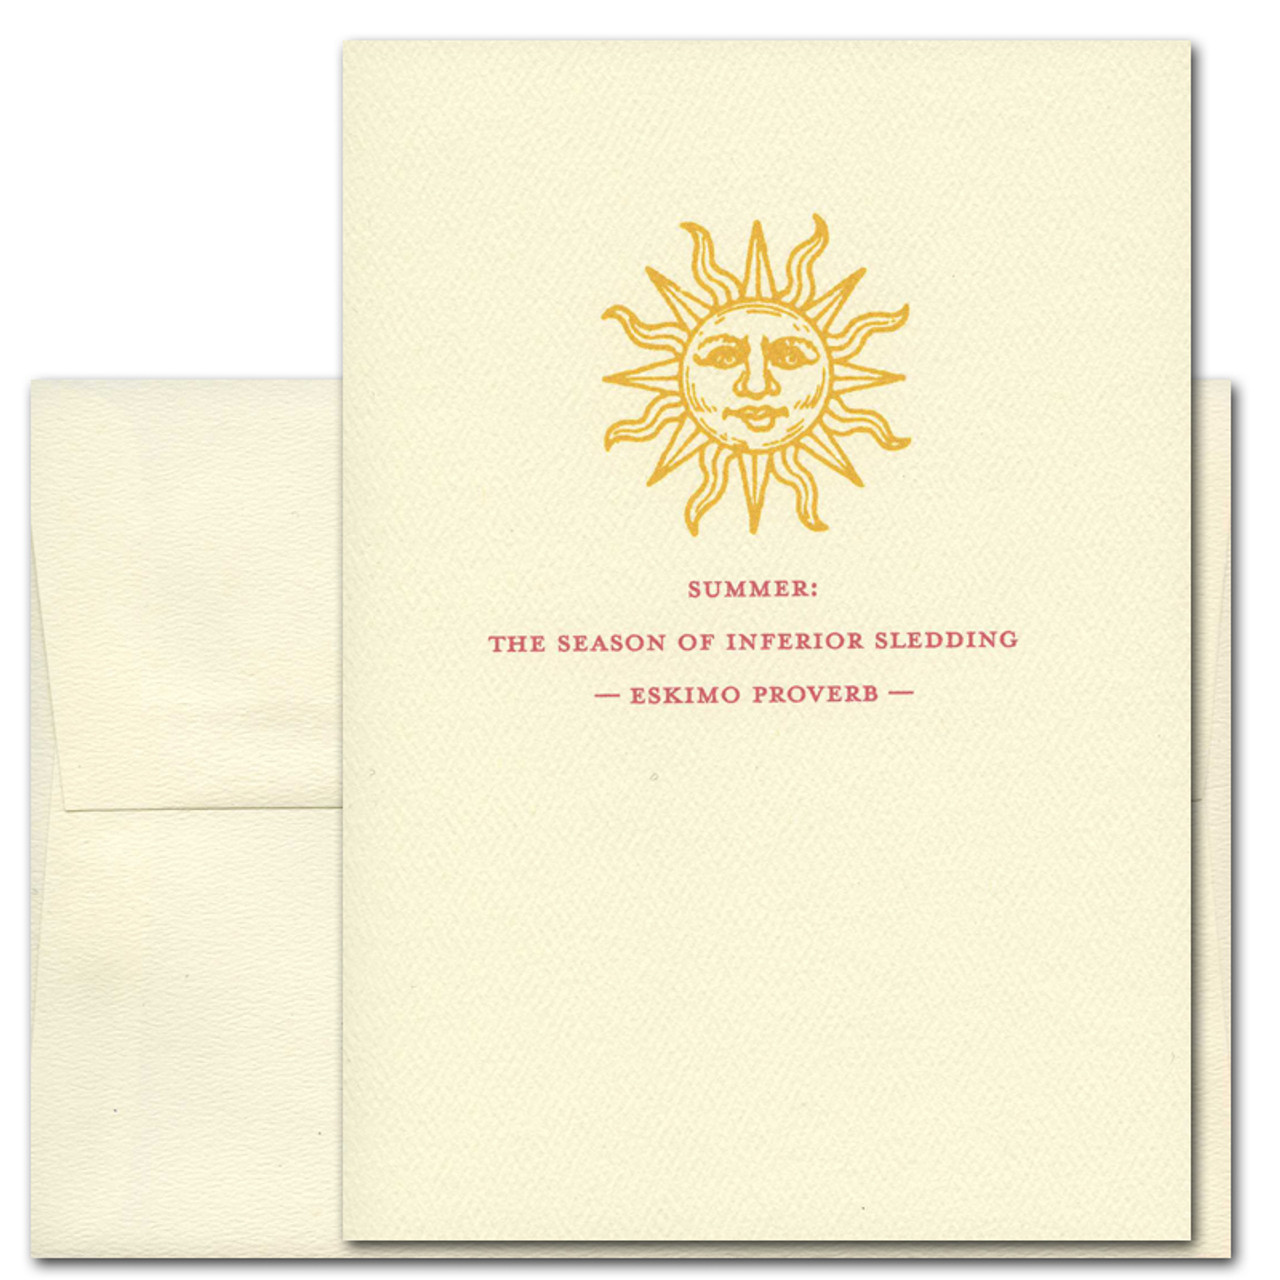 """Quotation Card """"Summer: Eskimo Proverb"""" Cover showing vintage illustration of a golden sun with face and an Eskimo Proverb reading """"Summer: the season of inferior sledding."""""""